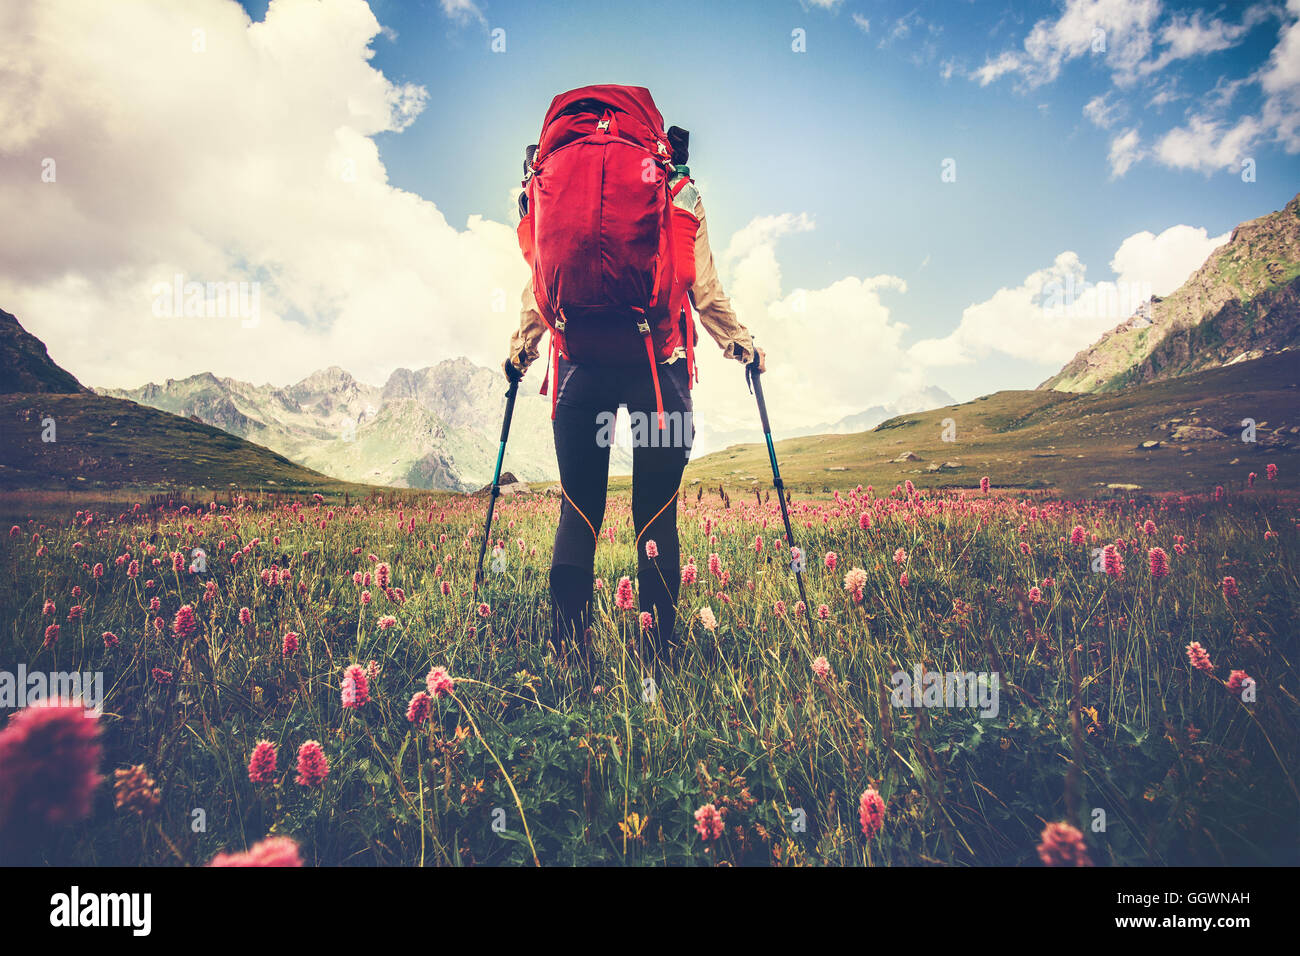 Woman Traveler with red backpack hiking Travel Lifestyle concept Summer vacations outdoor mountains and flowers - Stock Image